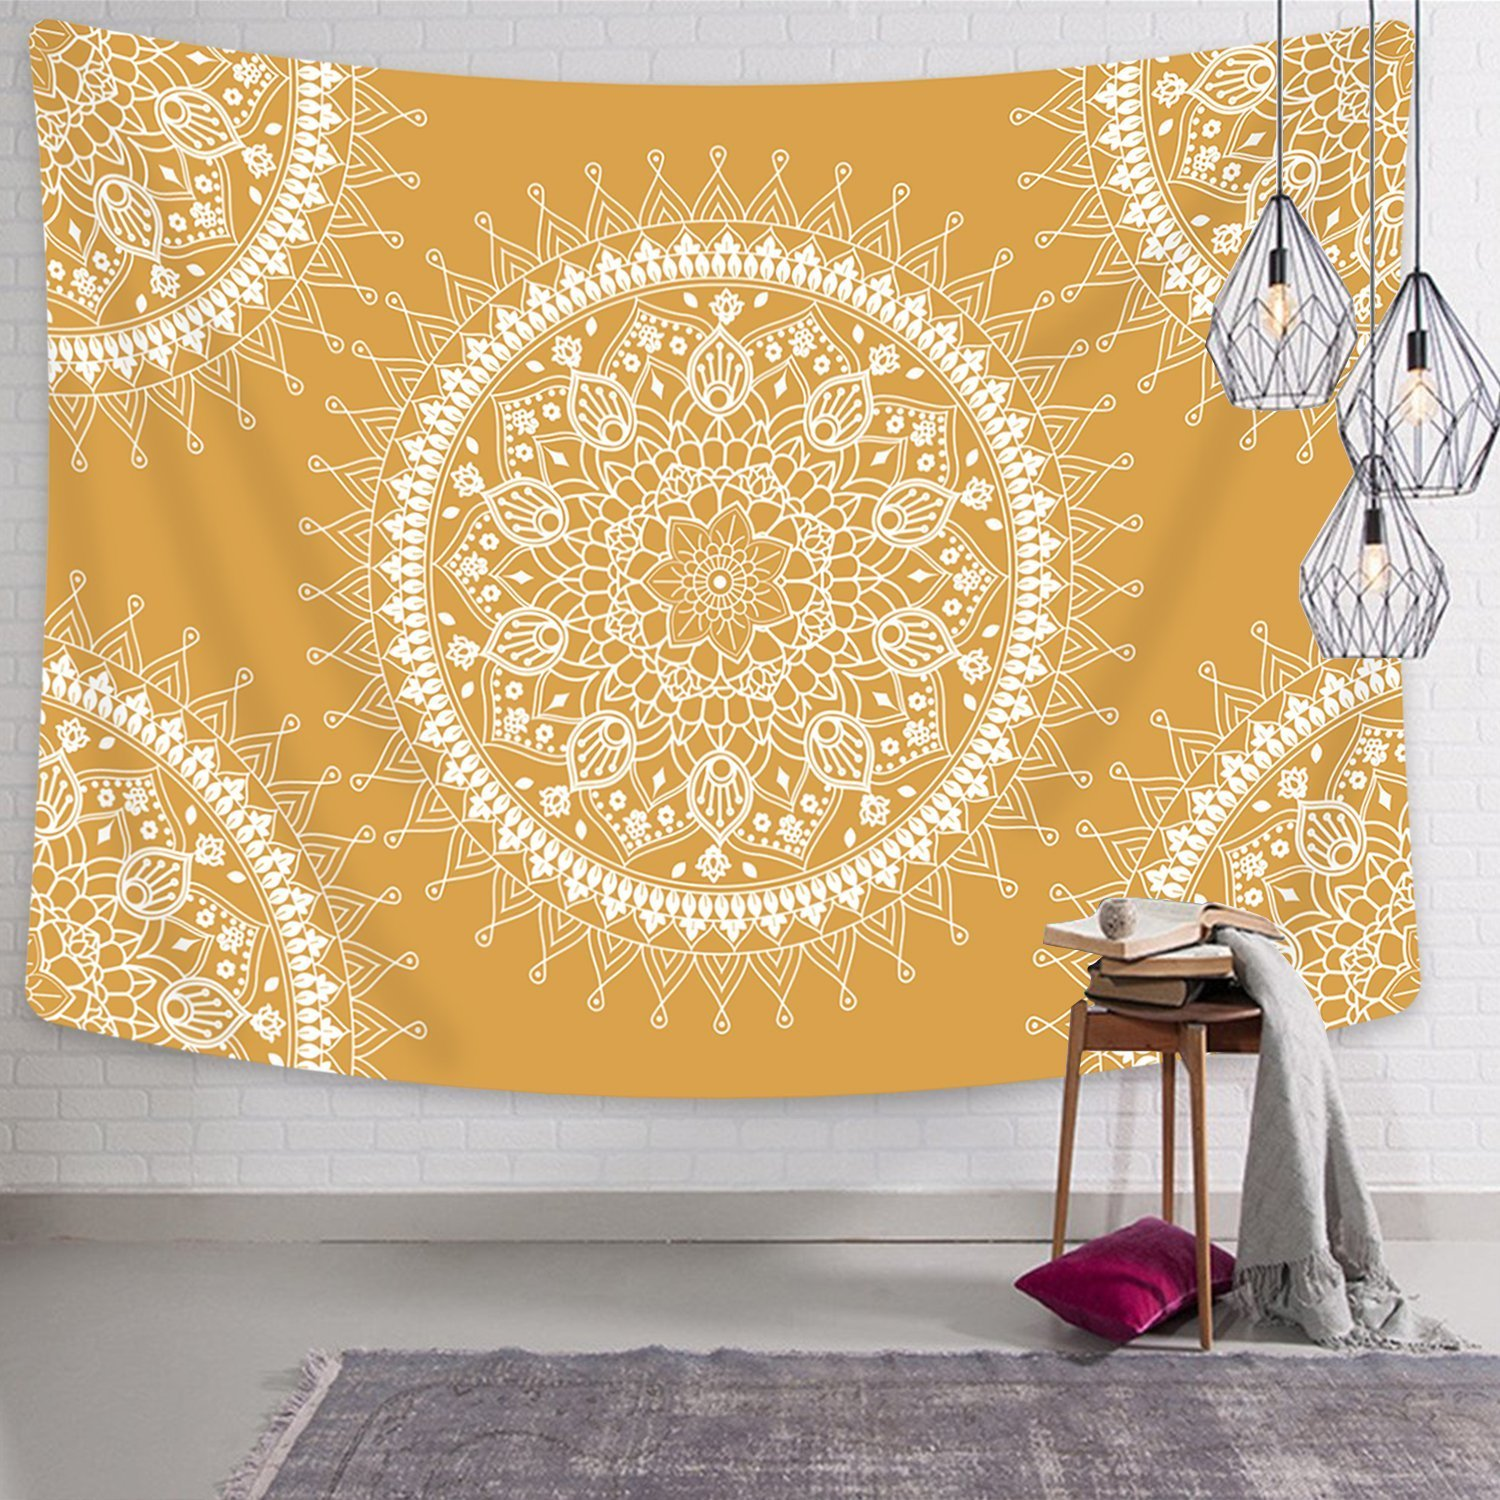 Jiamingyang Flower Elephant Print Wall Hanging Tapestry Bohemian Room Decor Bedding Rug (Large/80'' x 60'', Yellow)